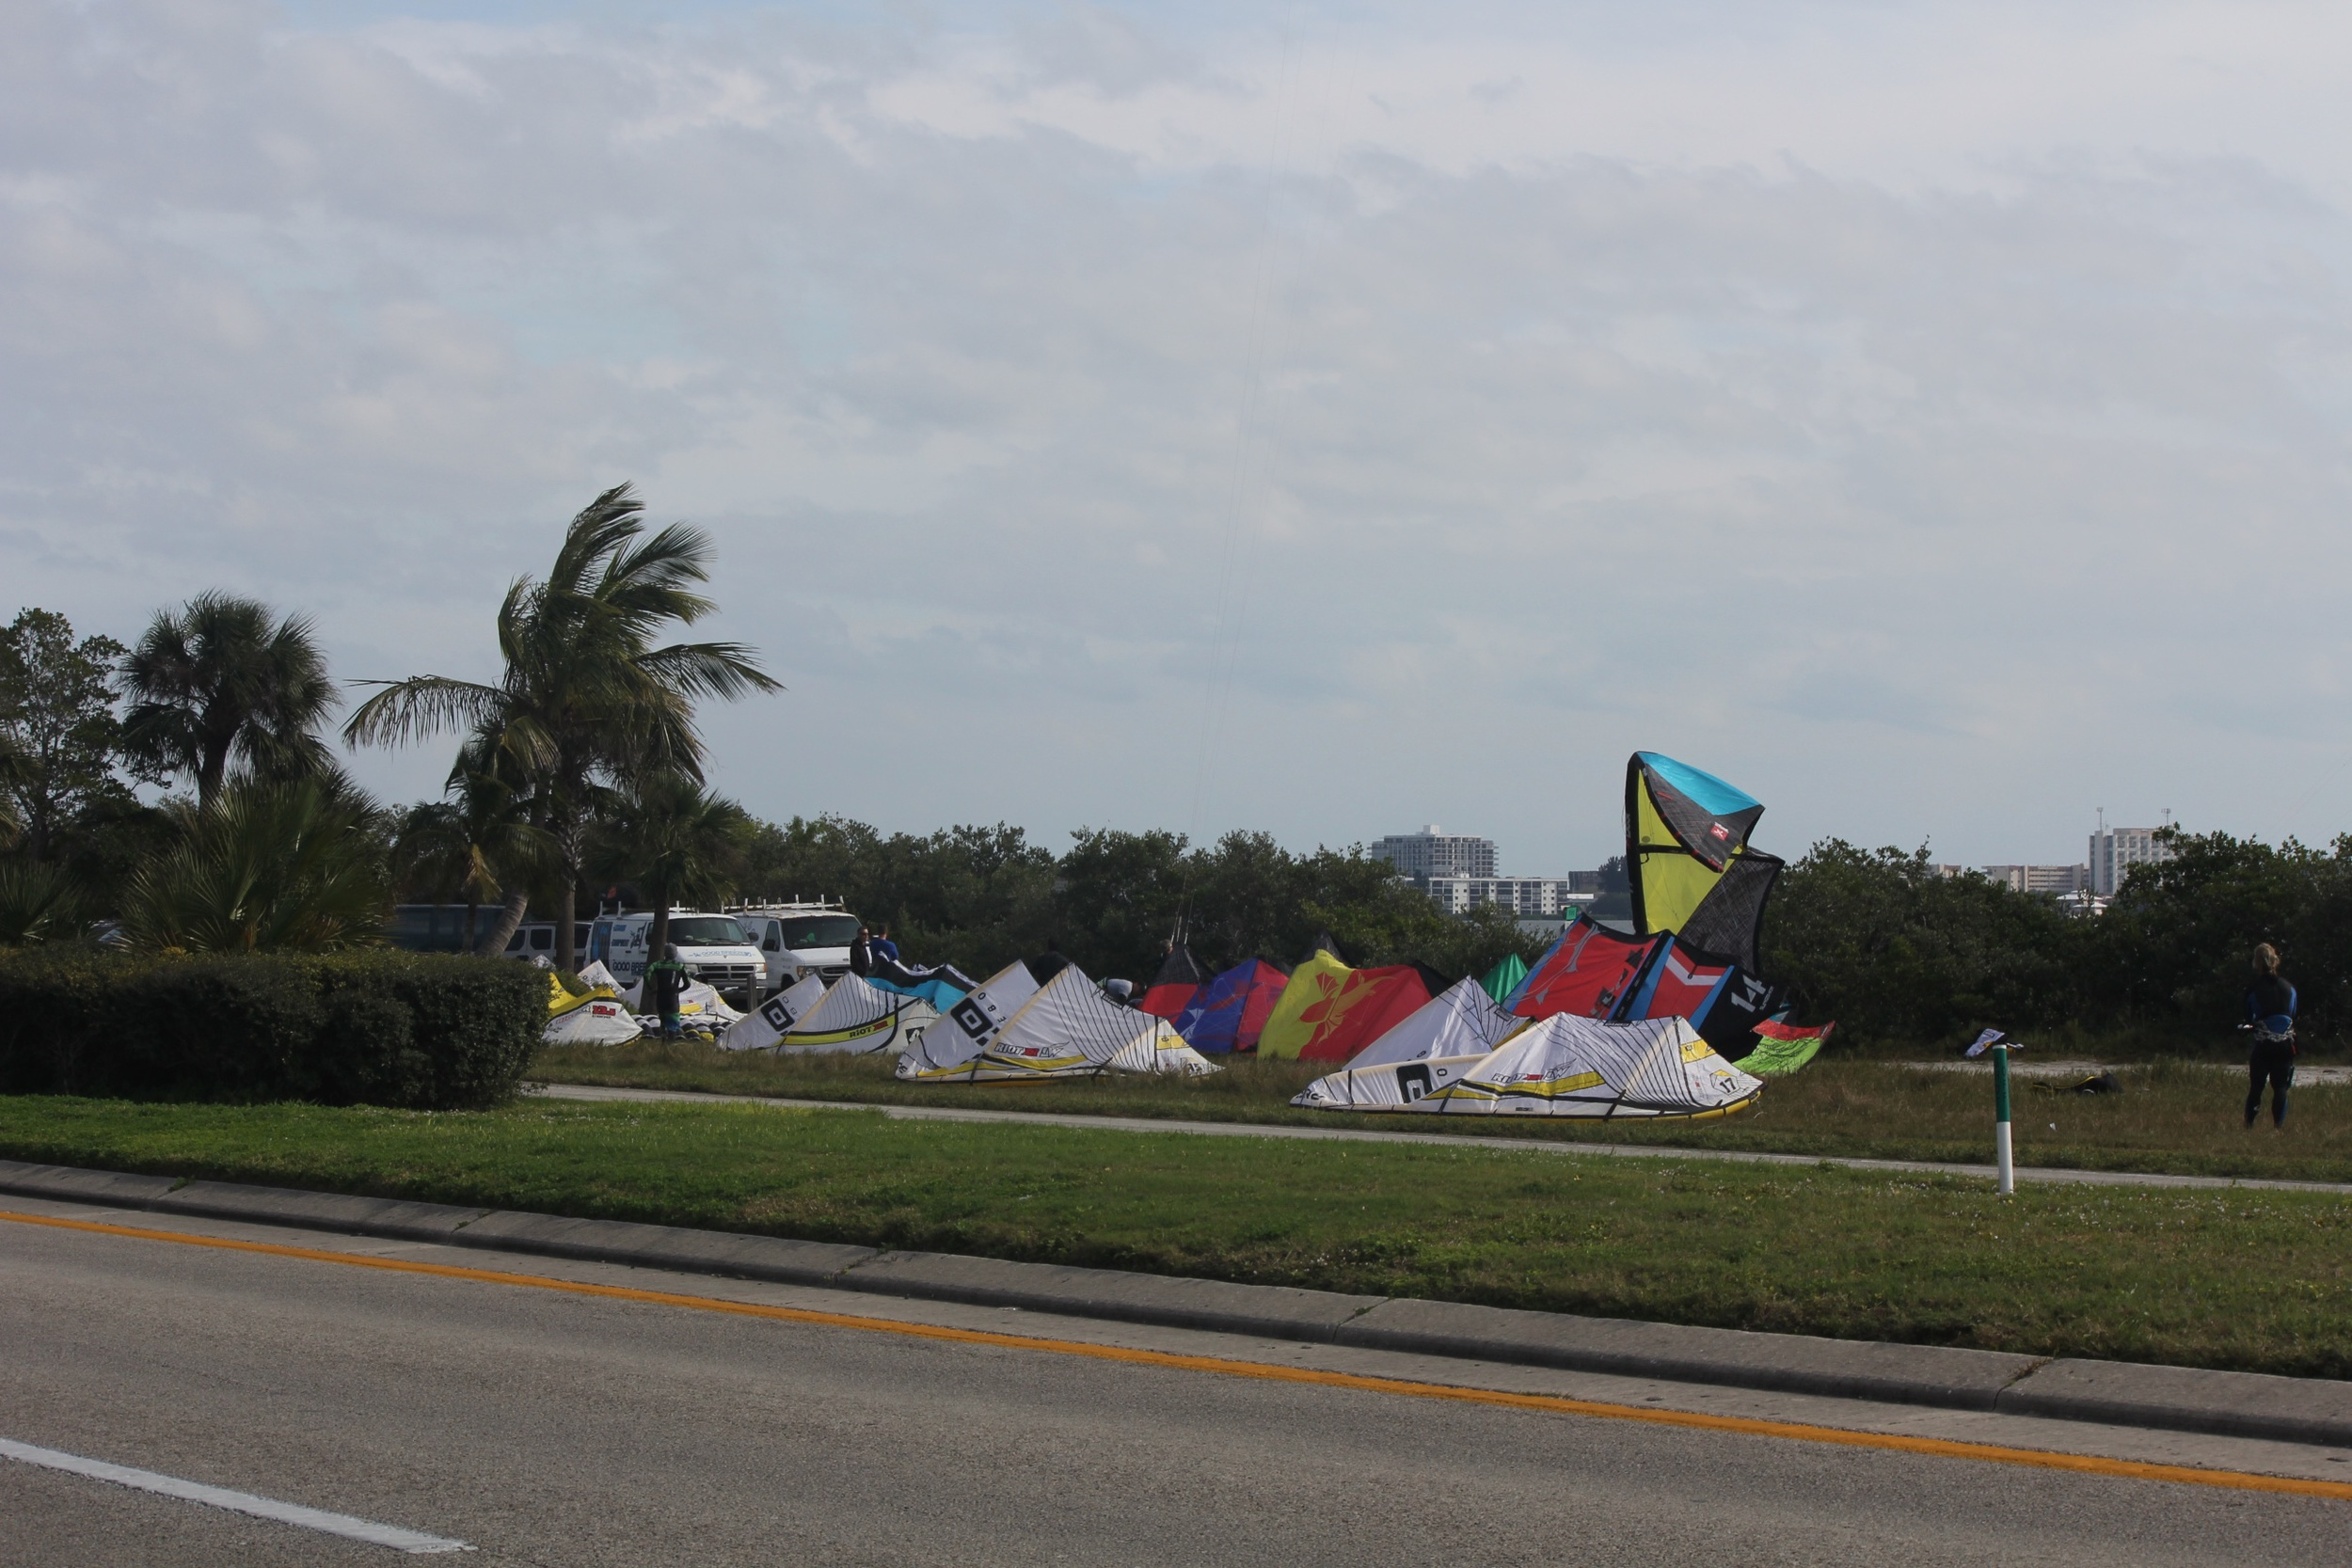 The kiters are right across the street from the windsurfers. The kites on the leeward side of the causeway.